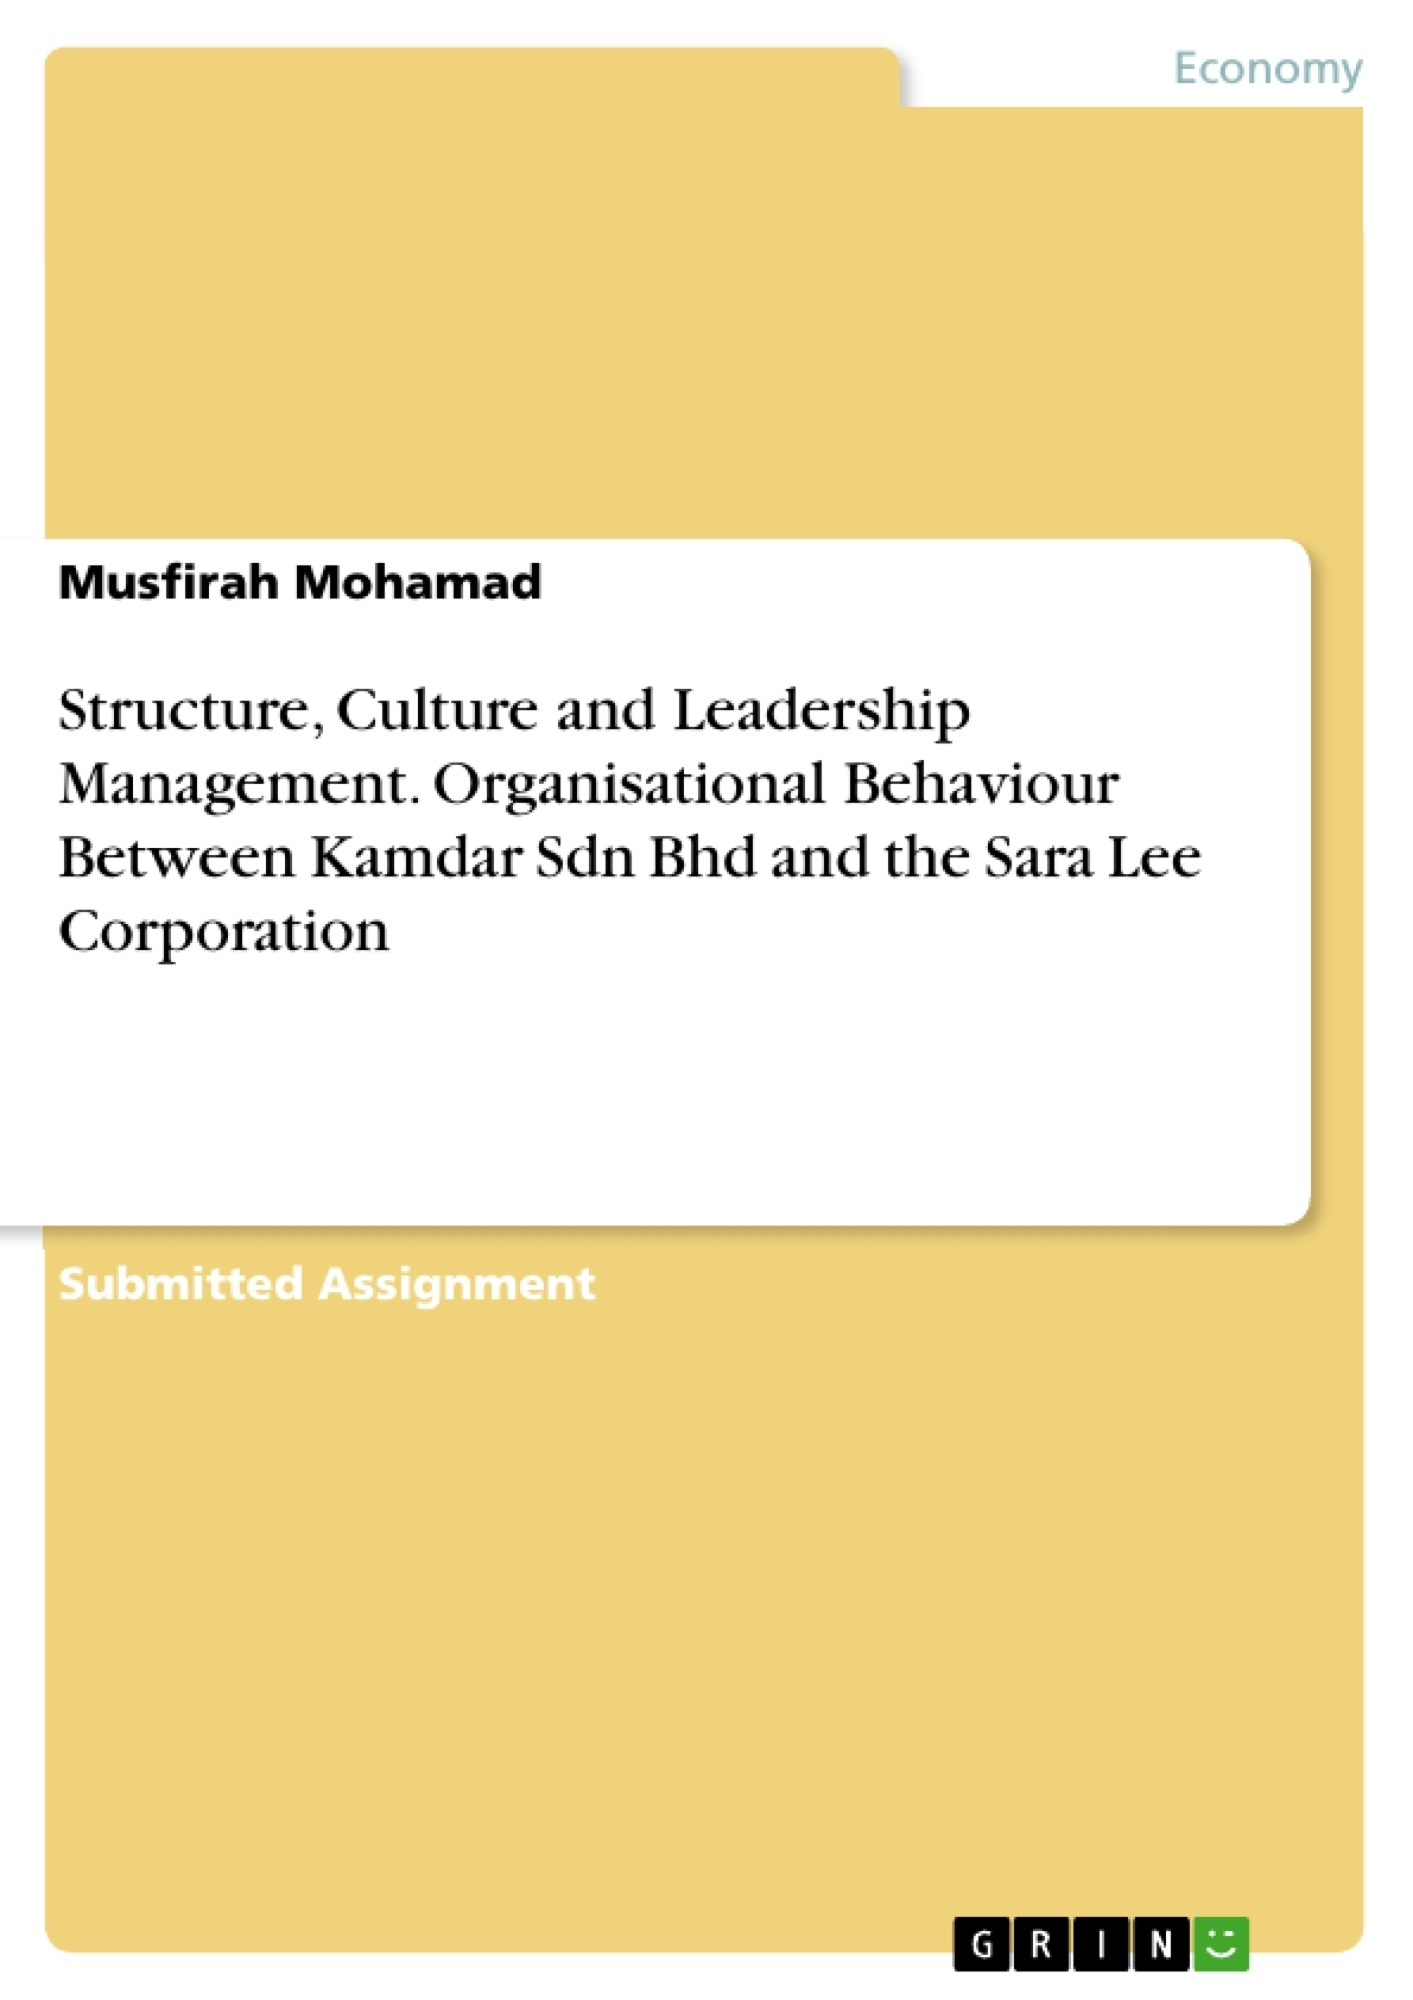 Title: Structure, Culture and Leadership Management. Organisational Behaviour Between Kamdar Sdn Bhd and the Sara Lee Corporation